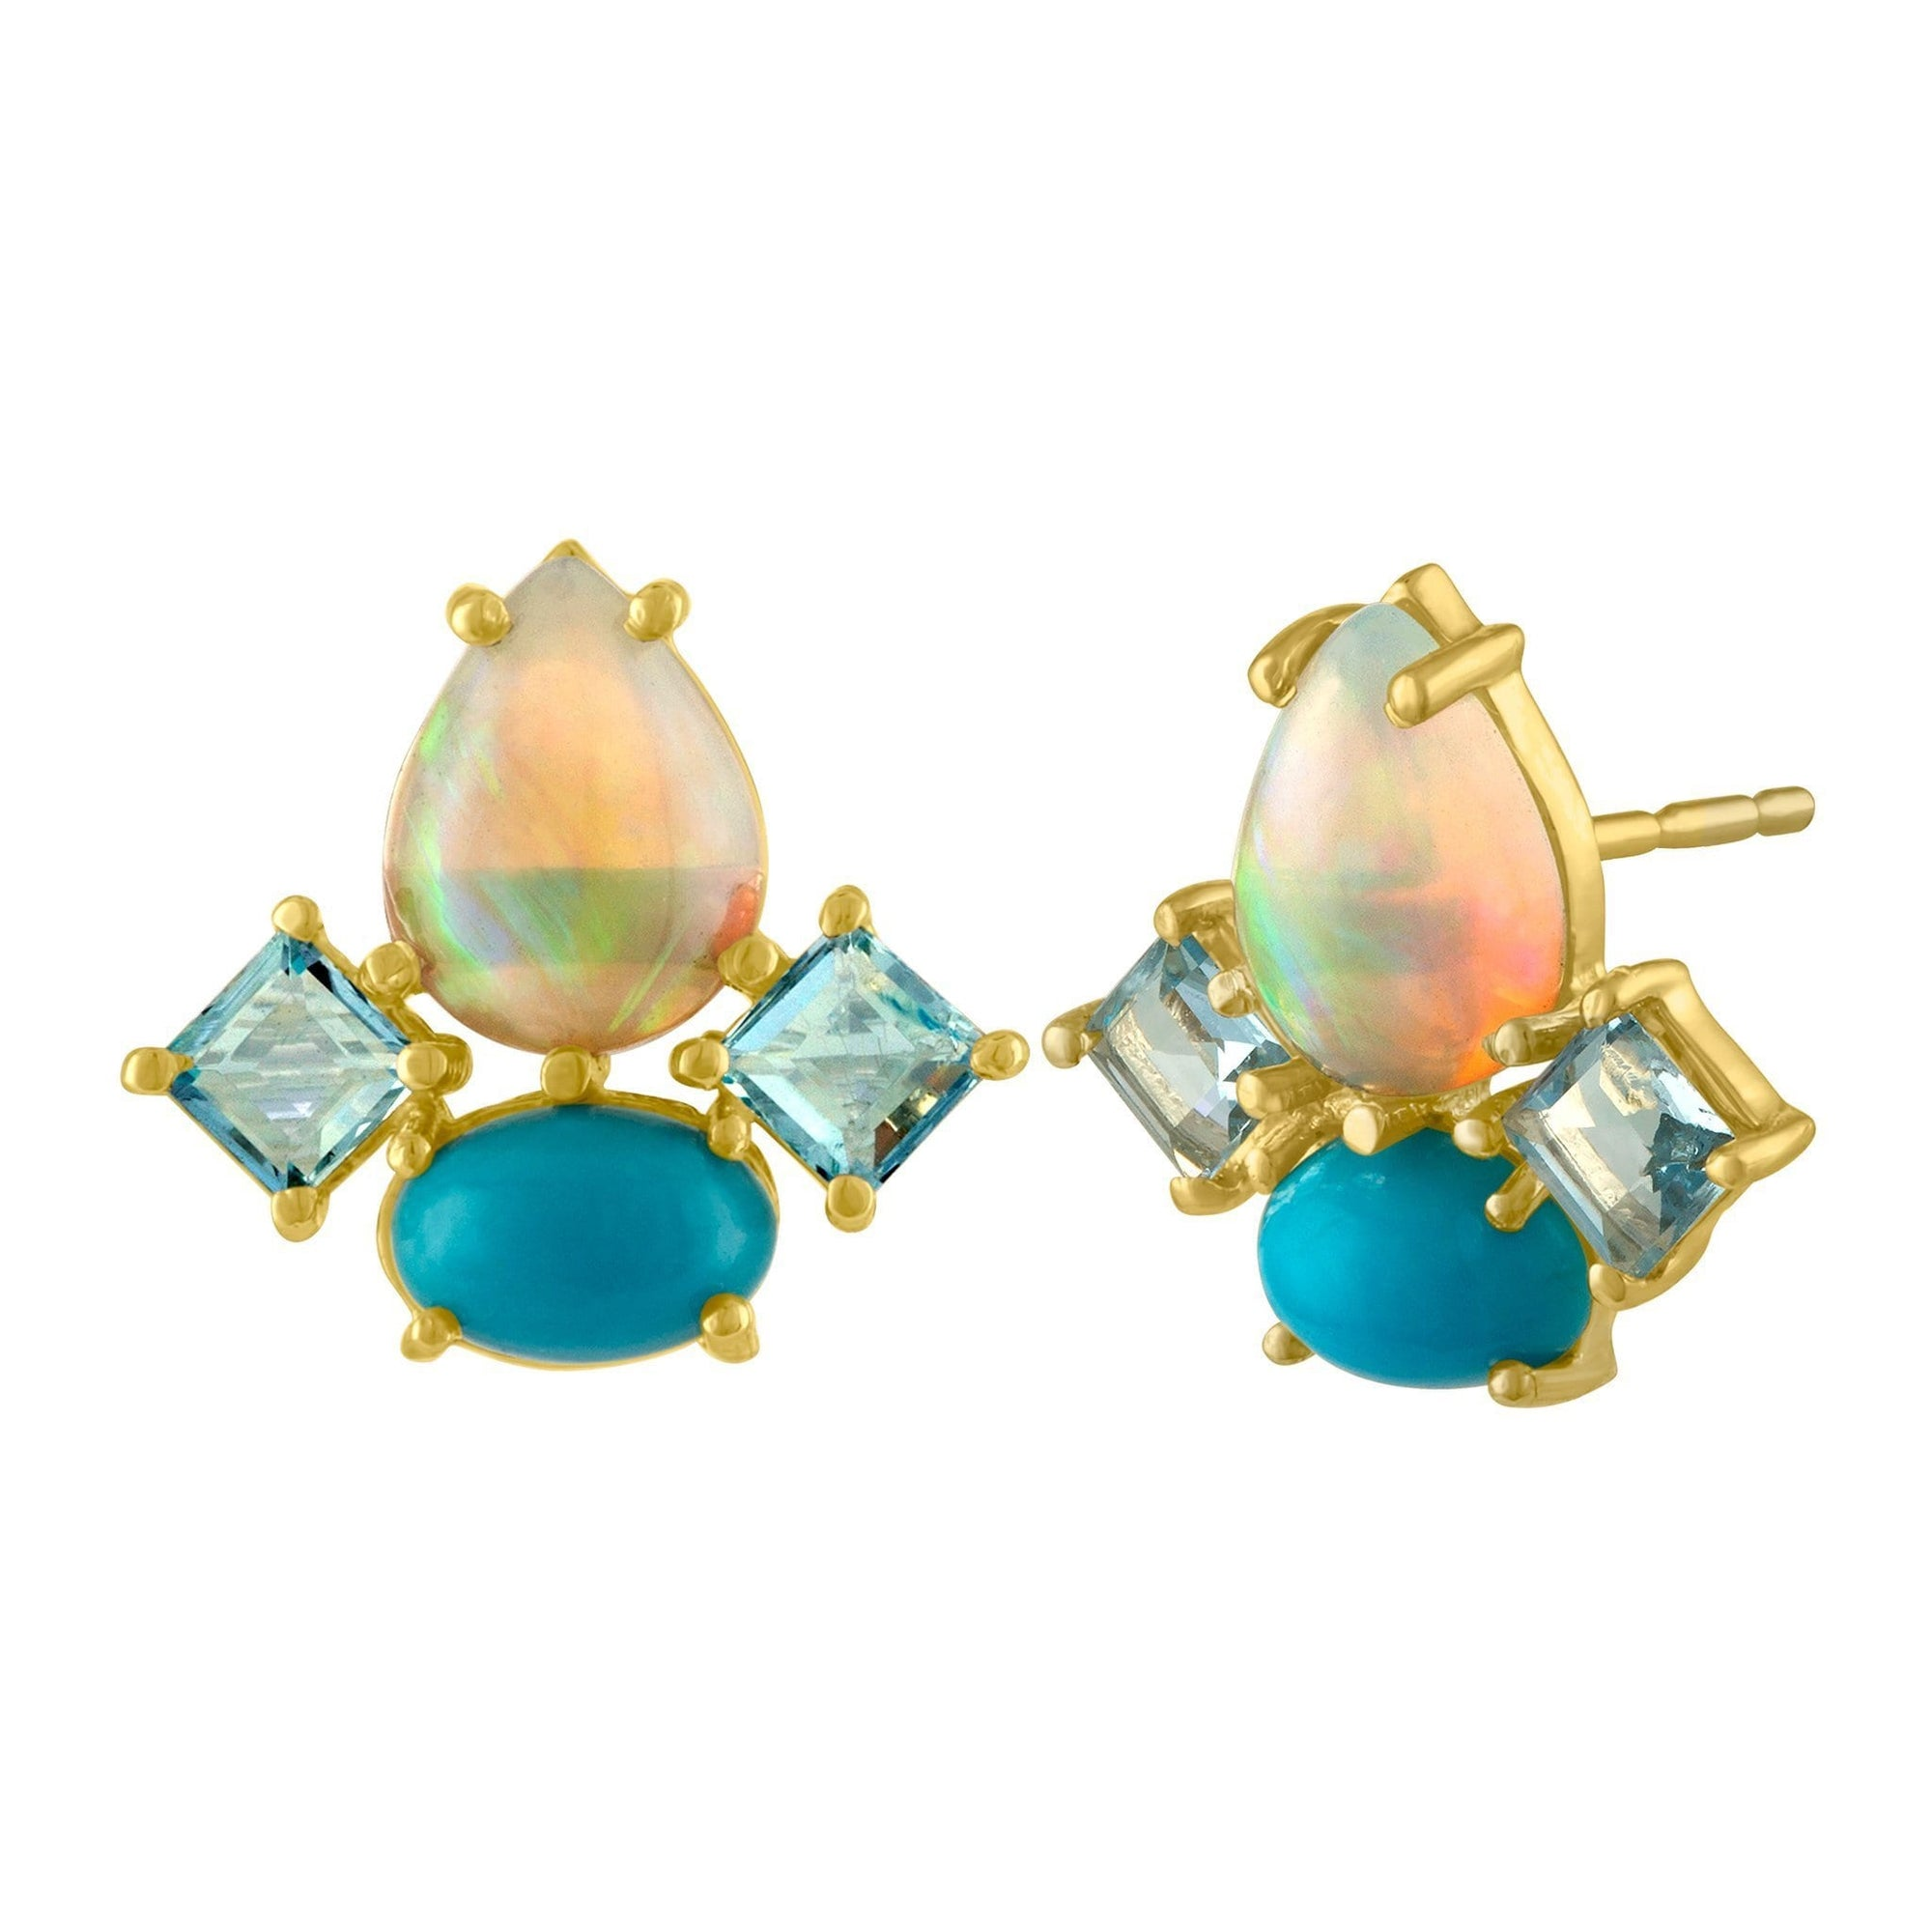 Dolce Stud Earrings: 14k Gold, Opal, Turquoise, Acquamarine